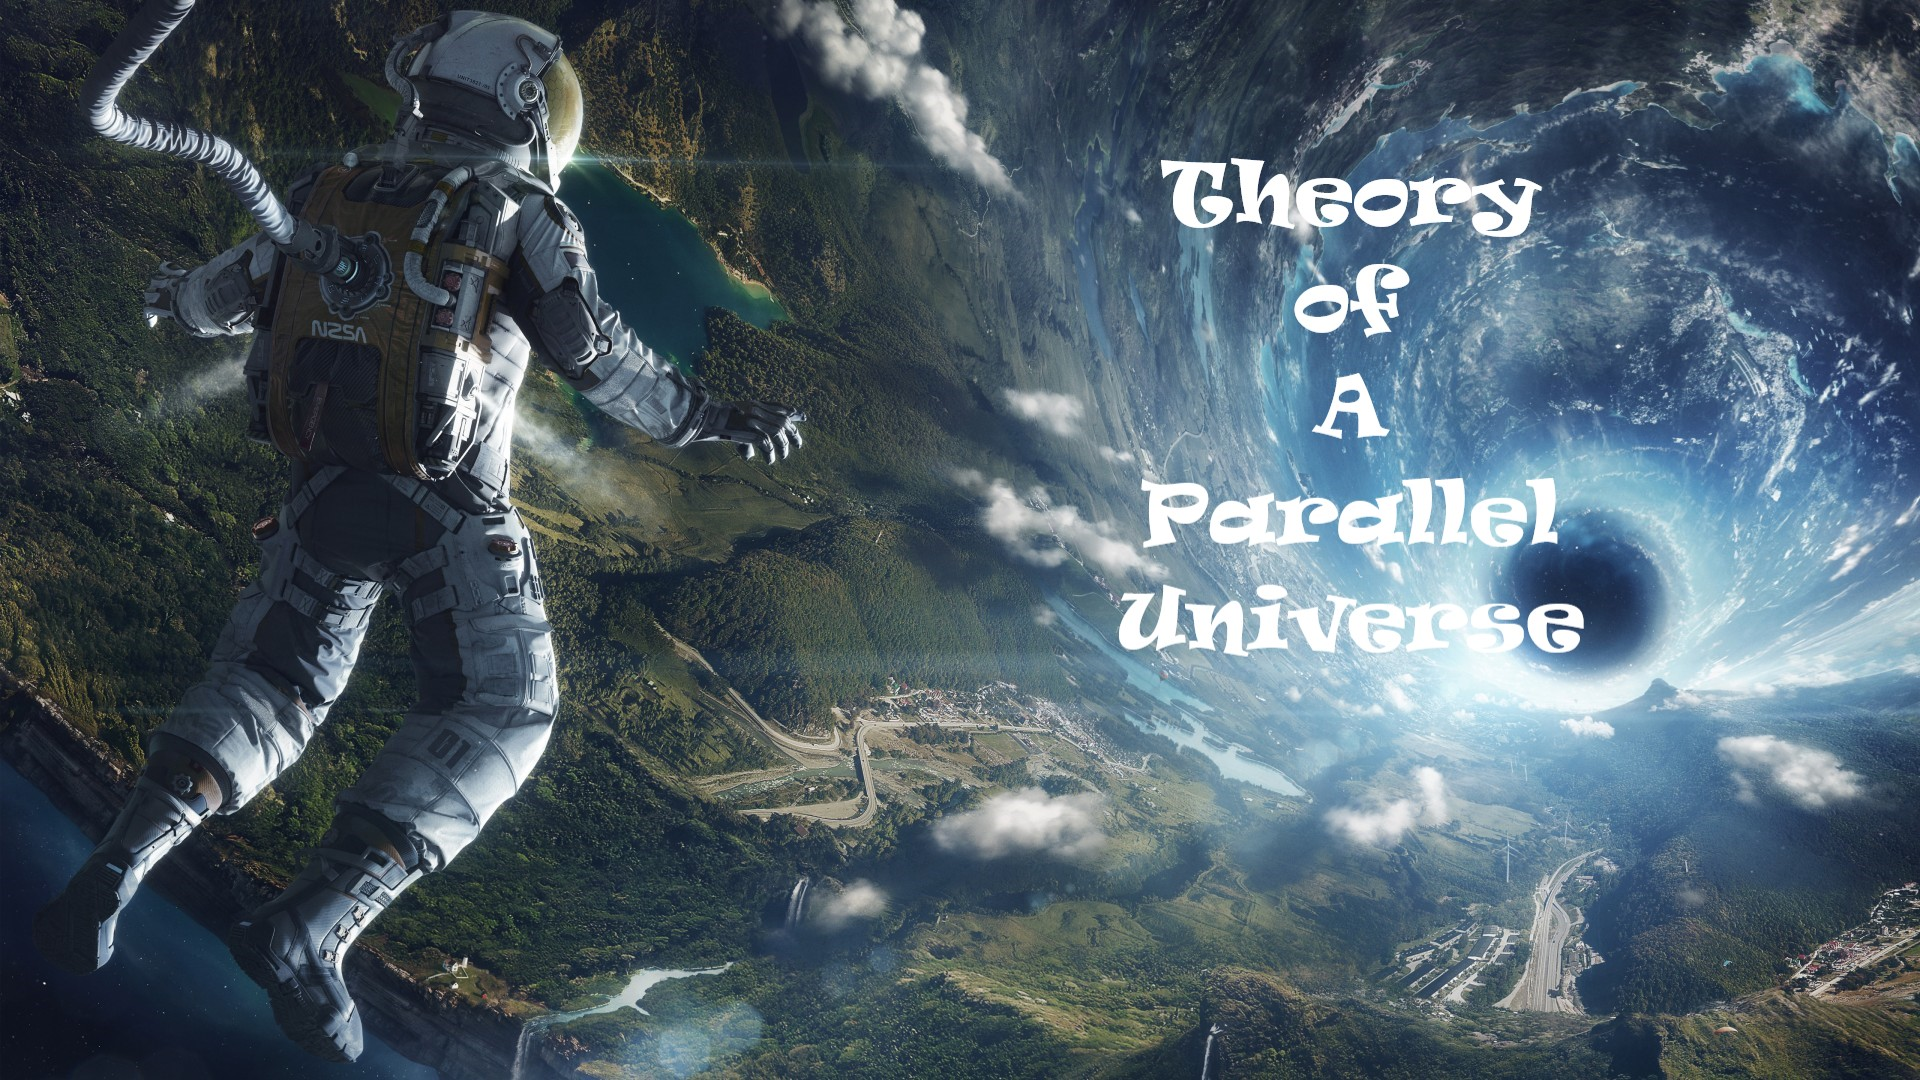 Theory of A Parallel Universe